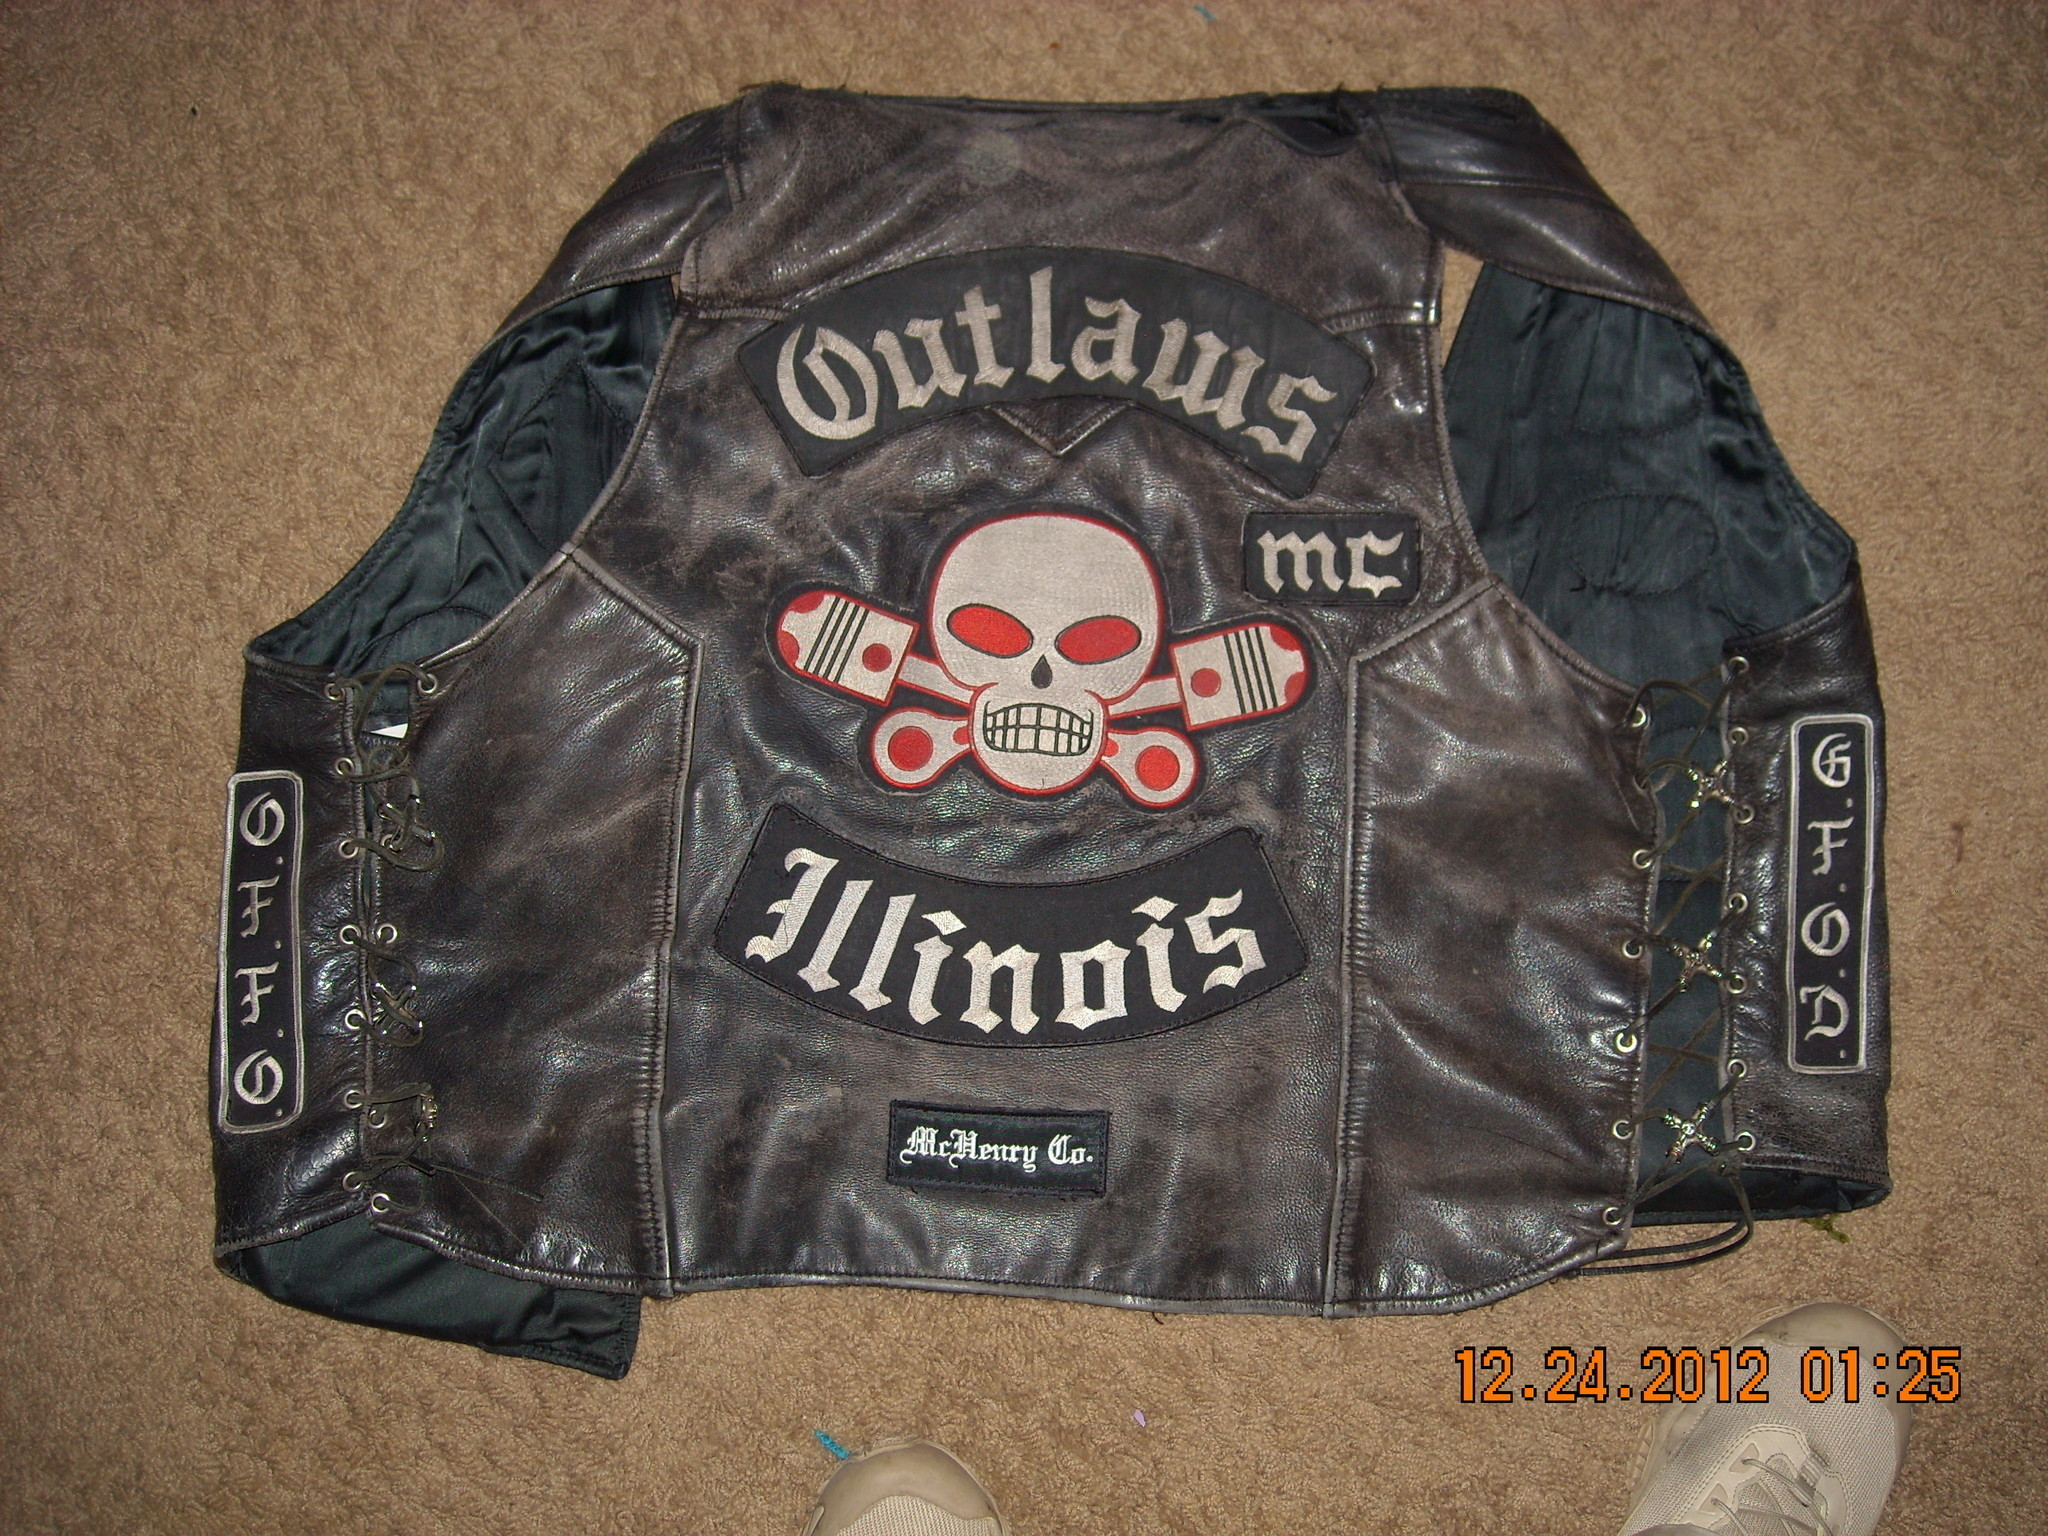 Outlaws Biker Group Loses Again In Court Over Return Of